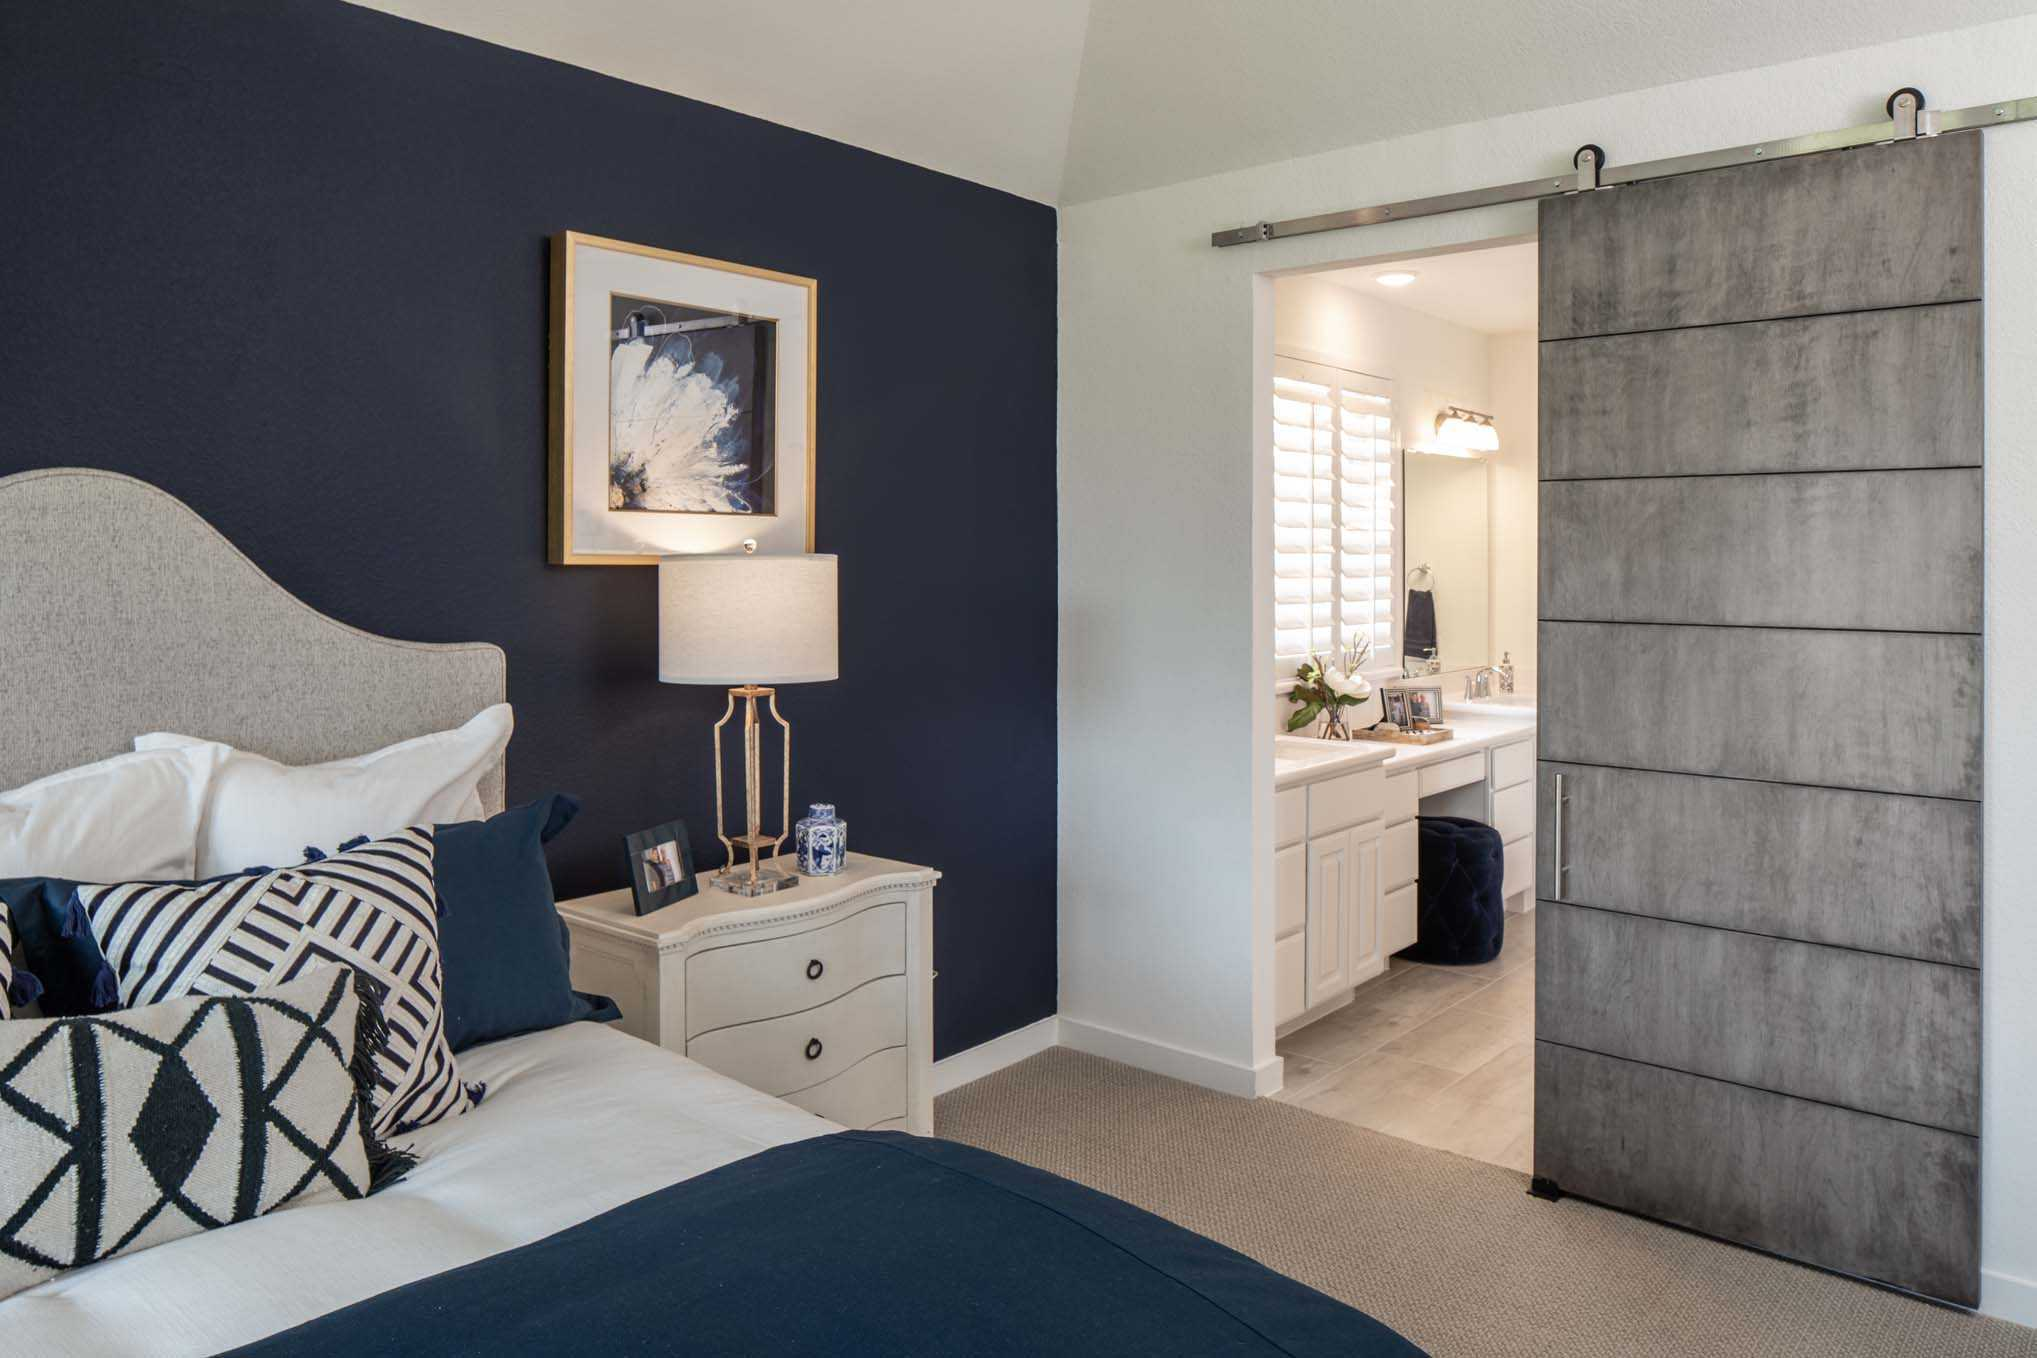 Bedroom featured in the Plan 556H By Highland Homes in Dallas, TX